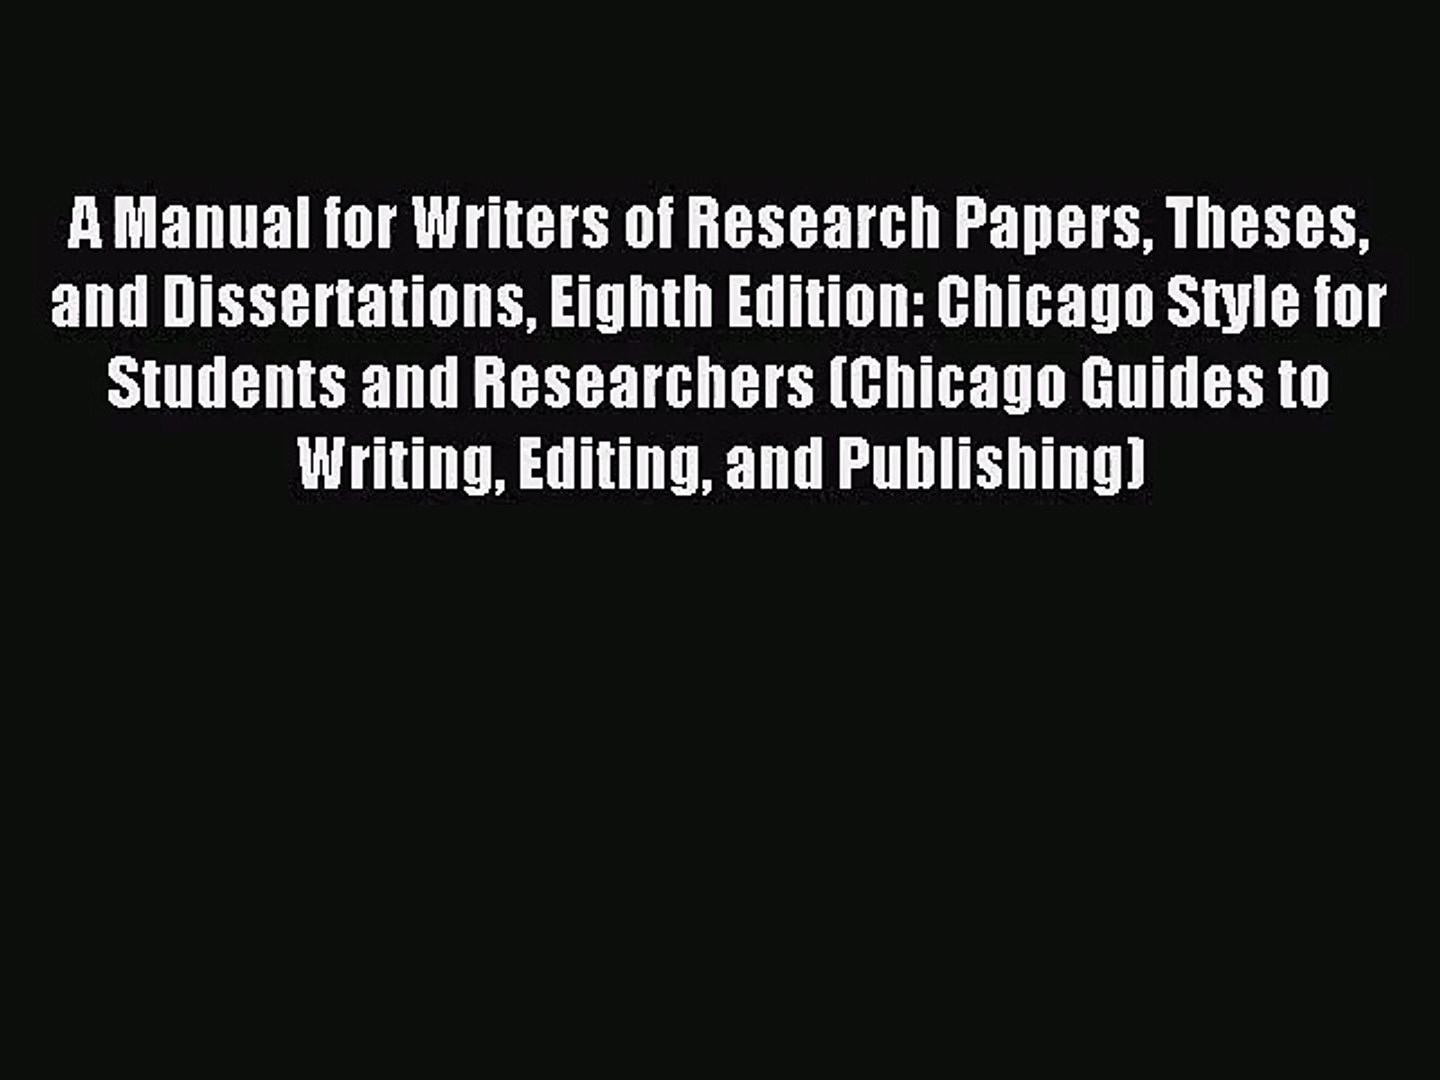 019 Research Paper Manual For Writers Of Papers Theses And Dissertations Eighth Edition X1080 Phenomenal A Pdf Full